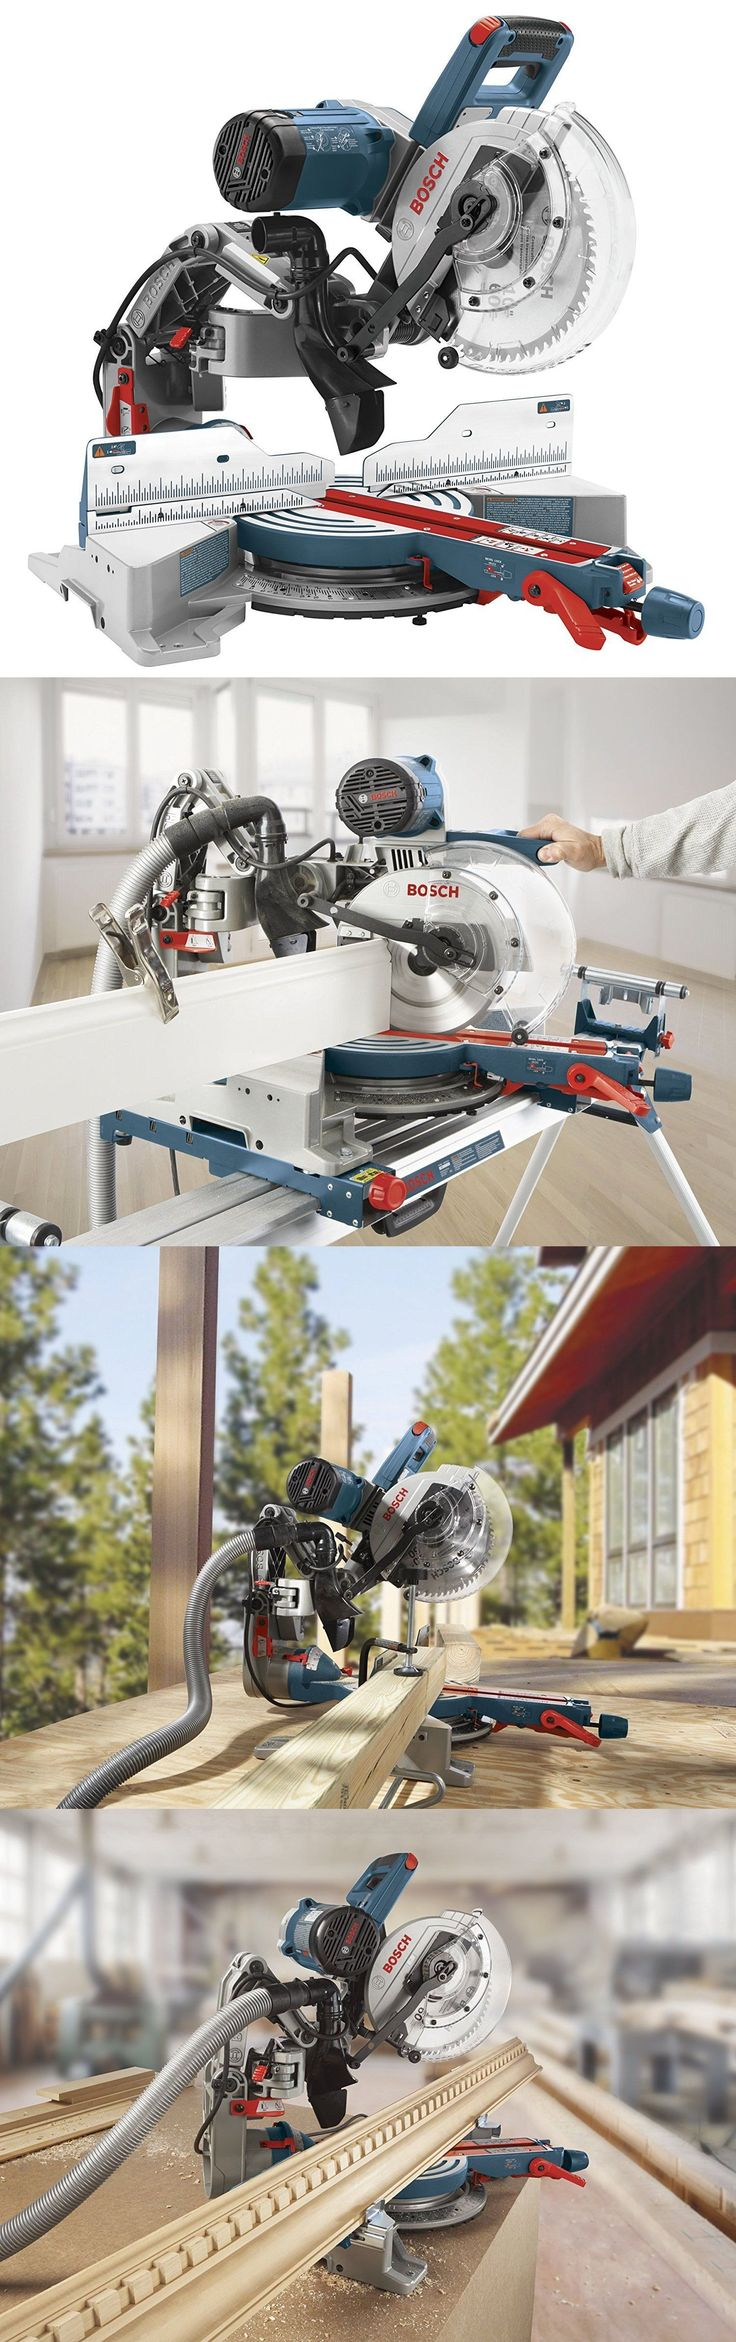 Miter and Chop Saws 20787: Bosch 15 Amp 10 Dual-Bevel Glide Miter Saw Cm10gd New -> BUY IT NOW ONLY: $575 on eBay!